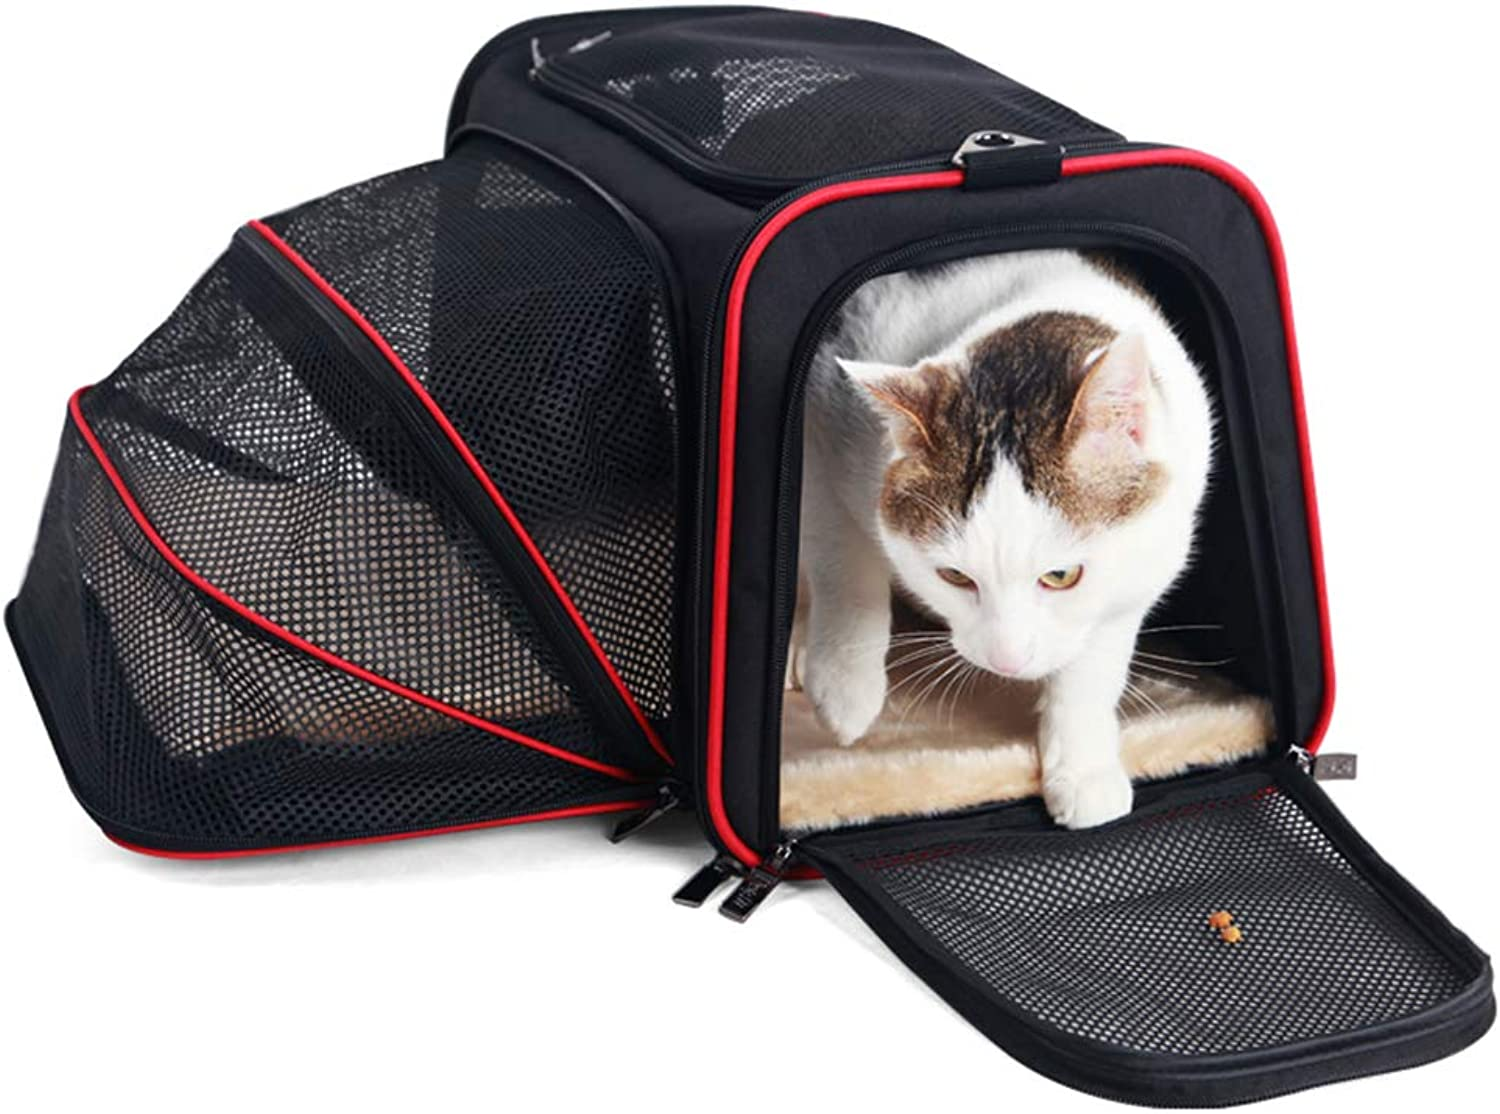 Pet Travel Crate Foldable Portable Dog Kennel Small Medium Dogs Cats Soft Sided Carriers Cats Dogs Travel Crate(Large),M